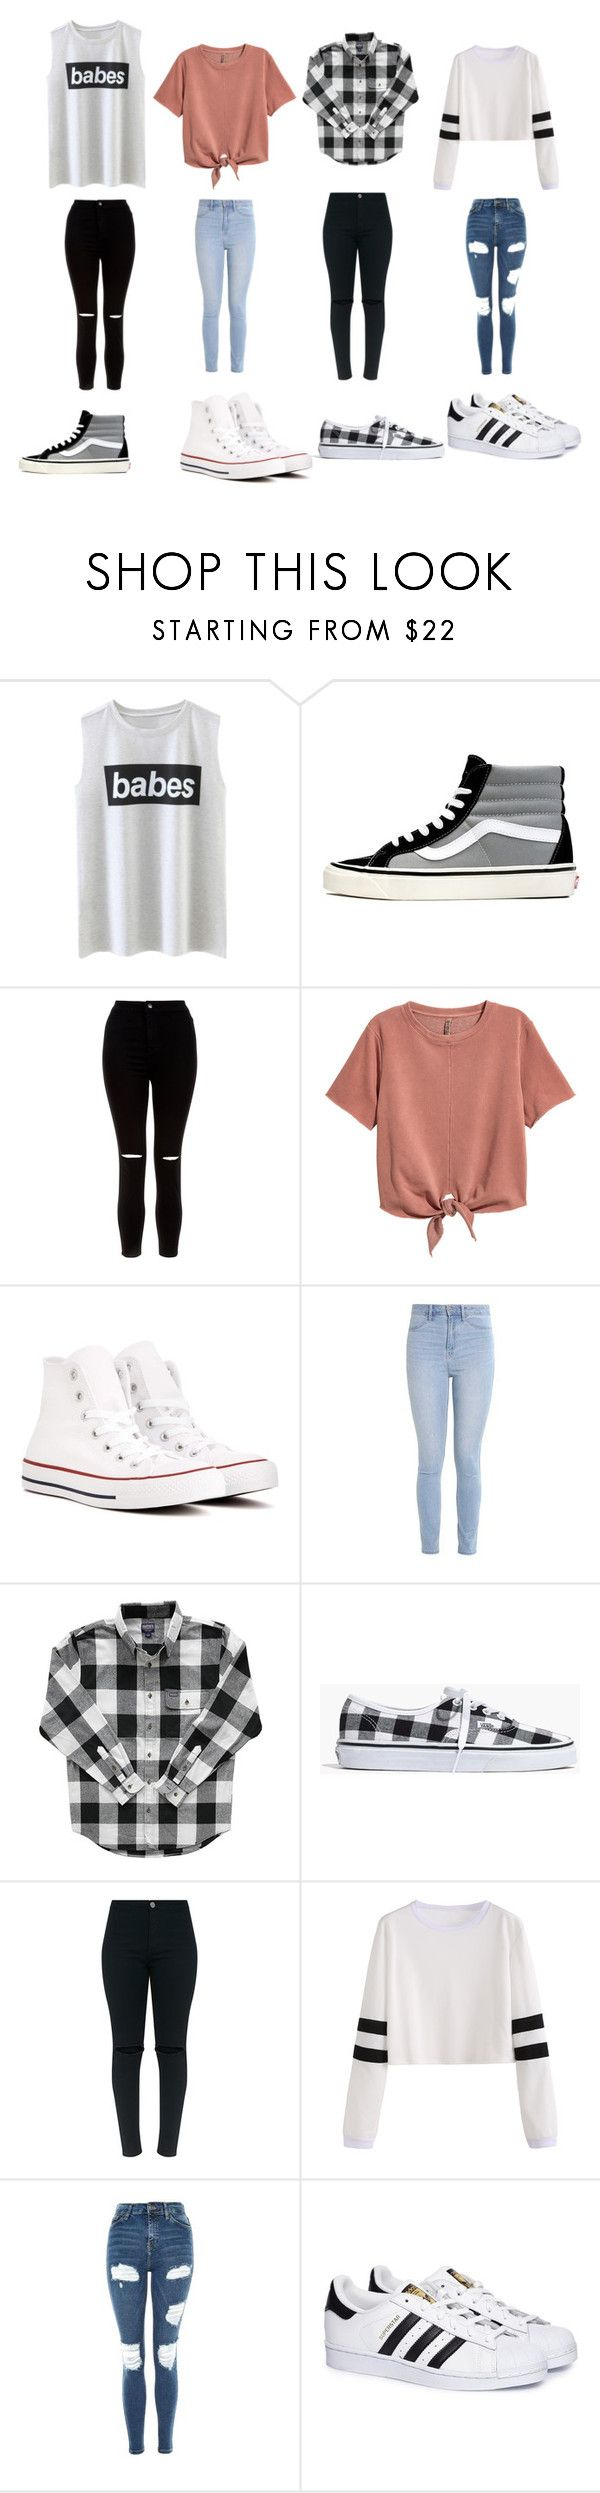 """""""PLEASE CHOOSE!!!"""" by queenb-676 ❤ liked on Polyvore featuring Vans, New Look, Converse, Hollister Co., Madewell, Topshop and adidas"""